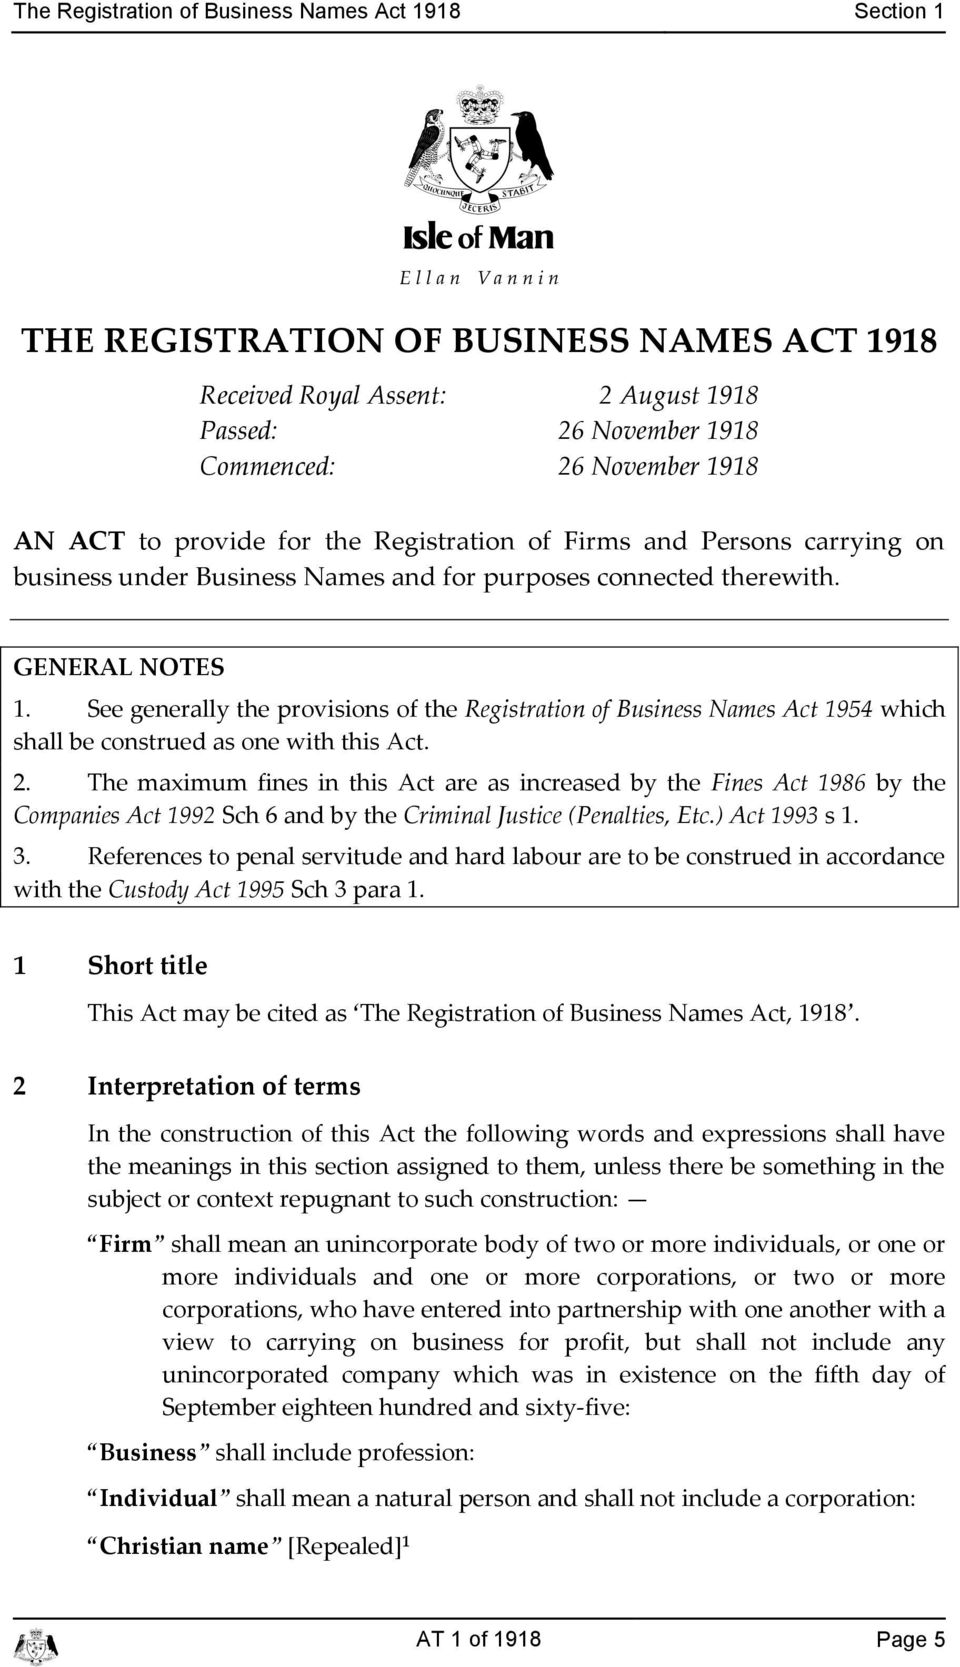 See generally the provisions of the Registration of Business Names At 1954 whih shall be onstrued as one with this At. 2.